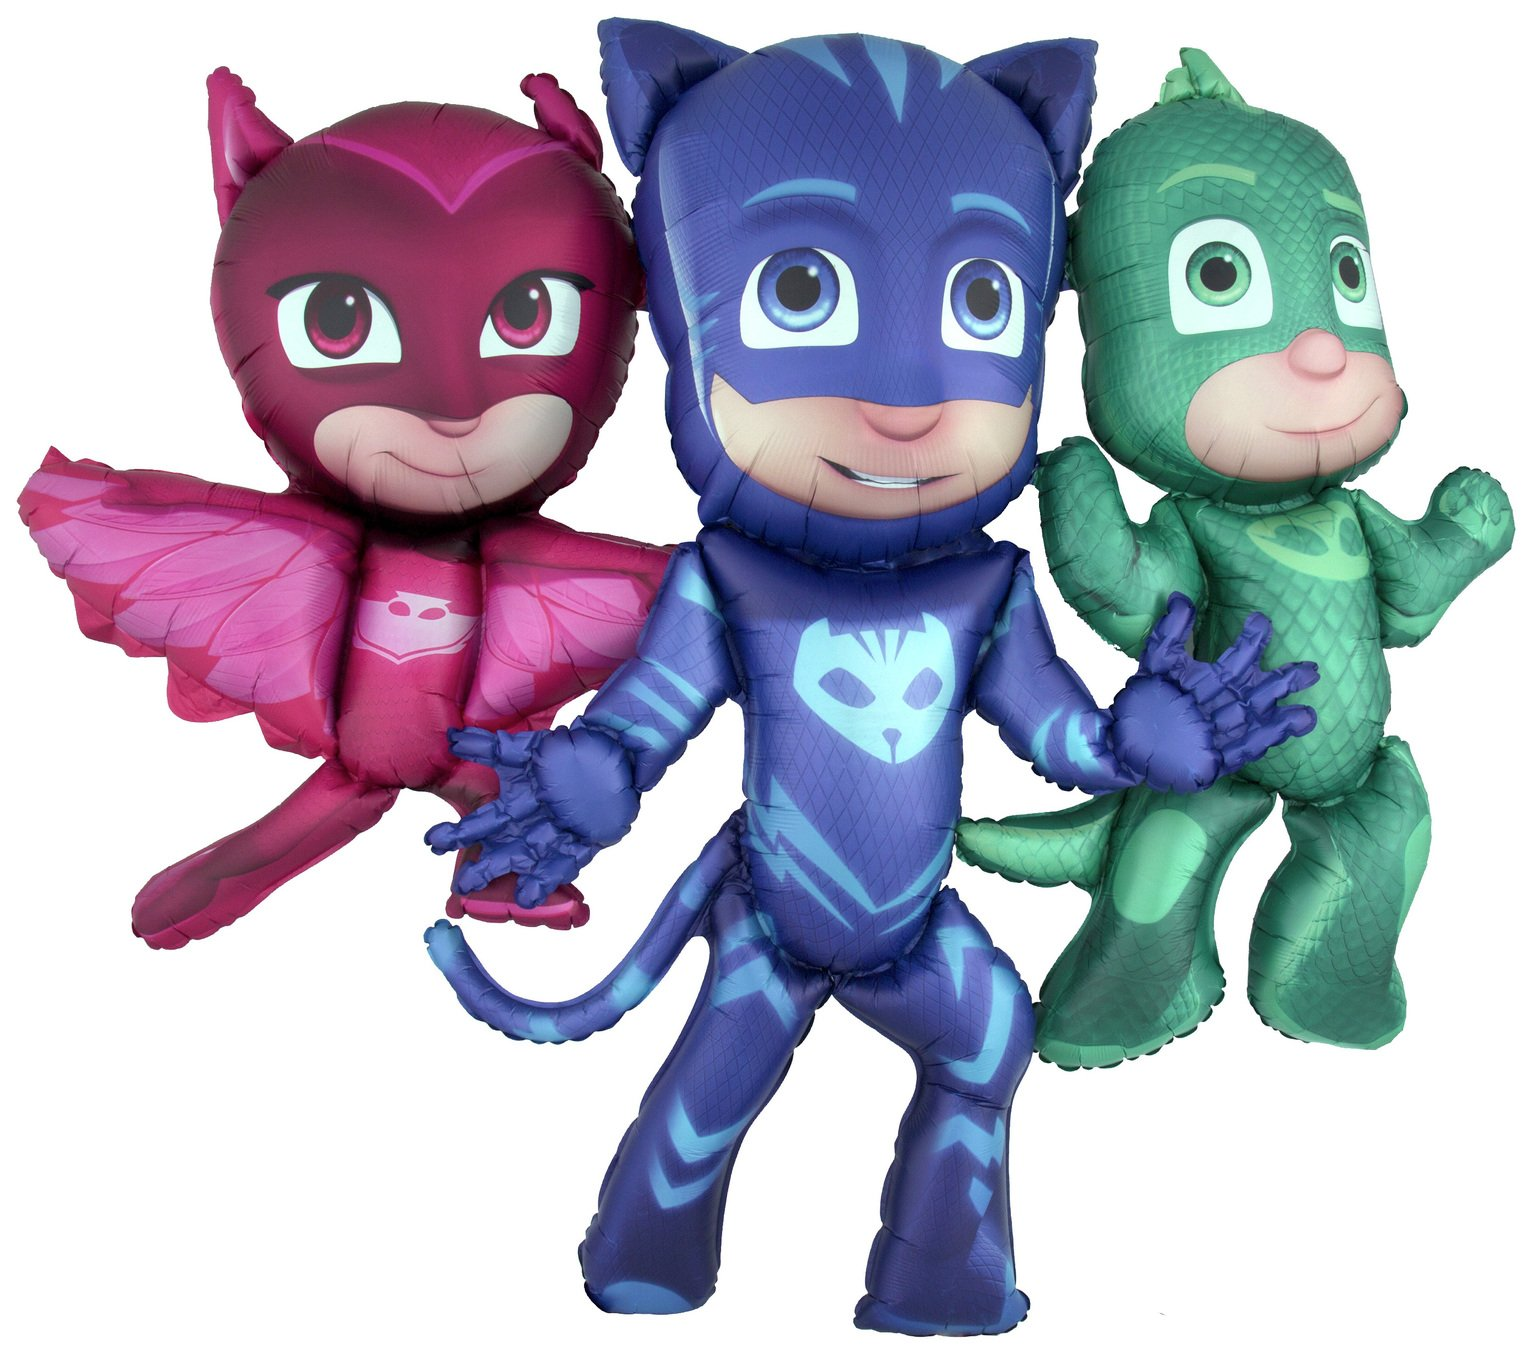 Eone PJ Masks Airwalker Balloon